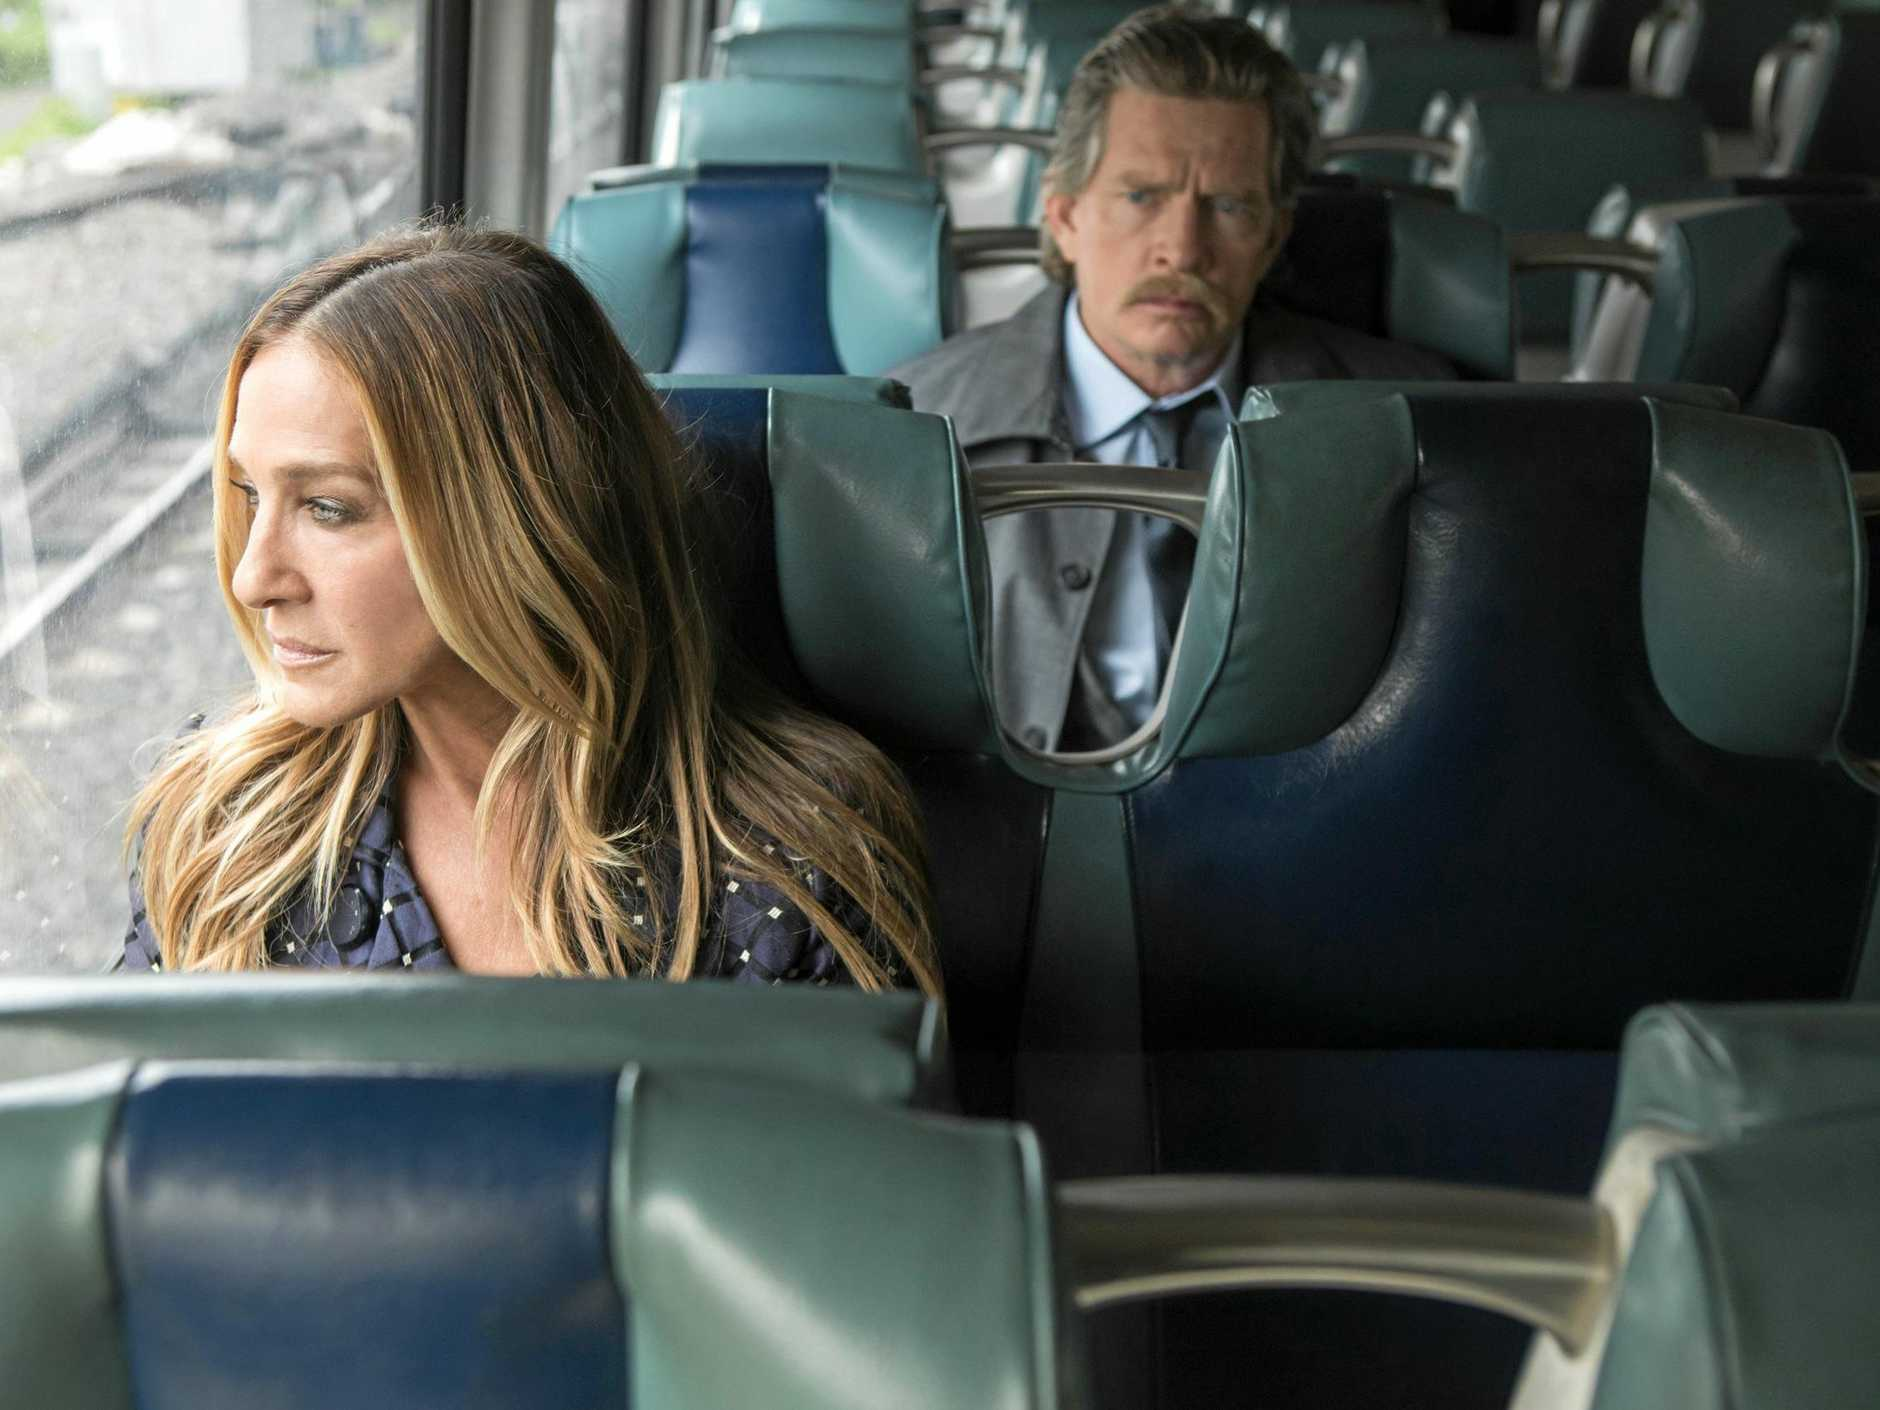 Sarah Jessica Parker and Thomas Haden Church in a scene from season two of The Divorce.